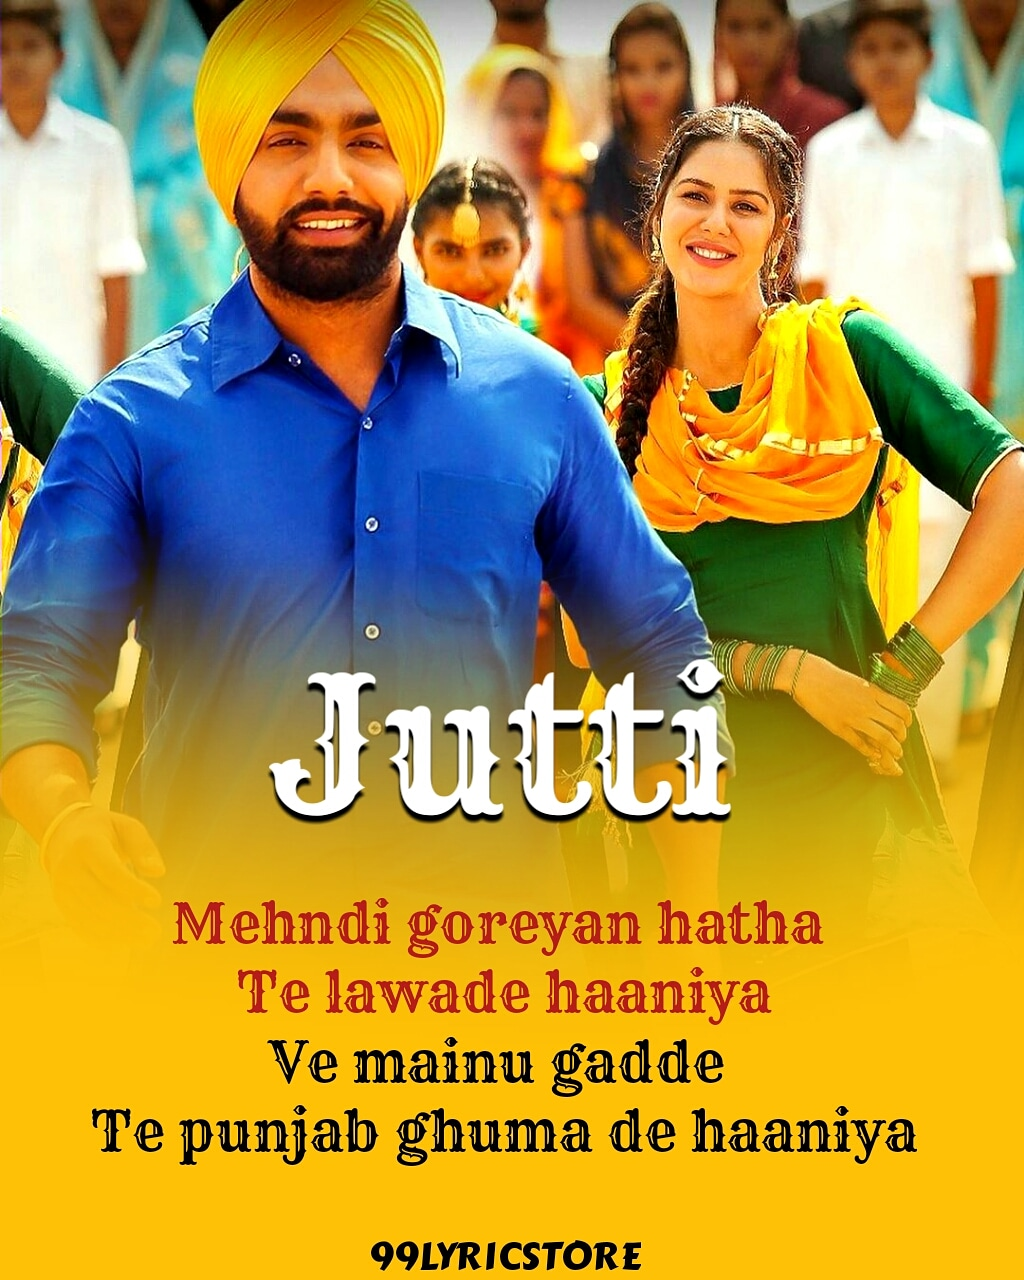 Jutti Punjabi Song Lyrics From Movie Muklawa Sung By Ammy virk and Mannat Noor